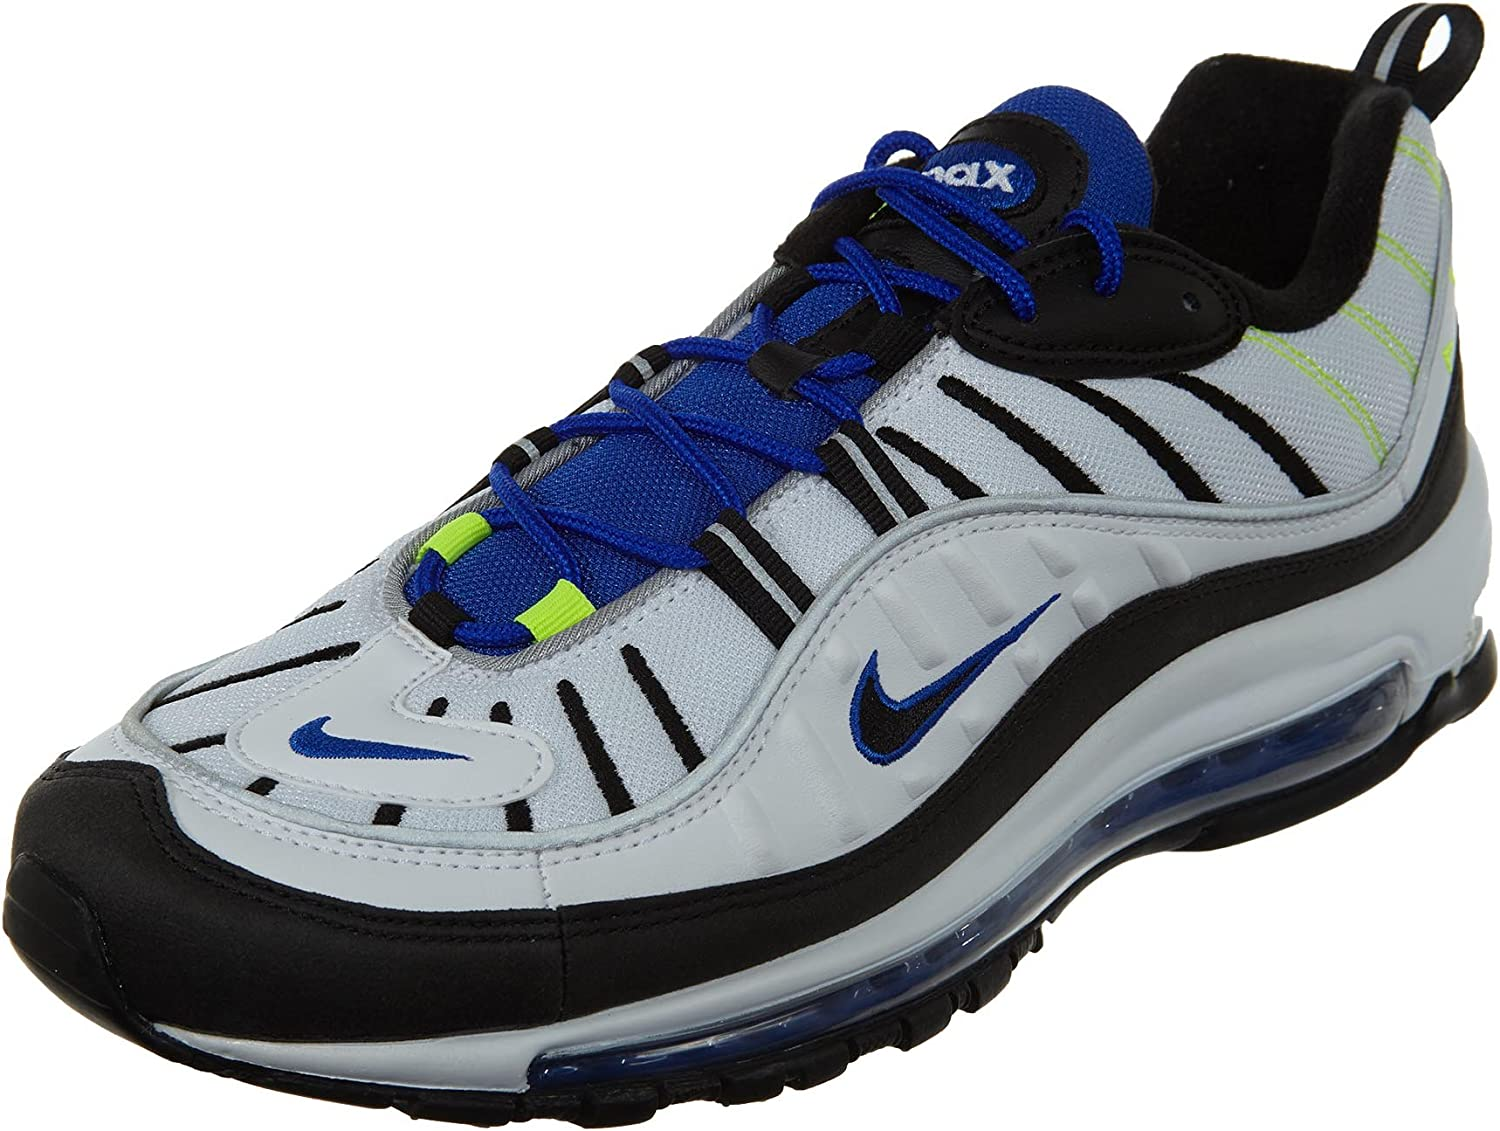 Nike AIR MAX 98 'Racer bluee' - 640744-103